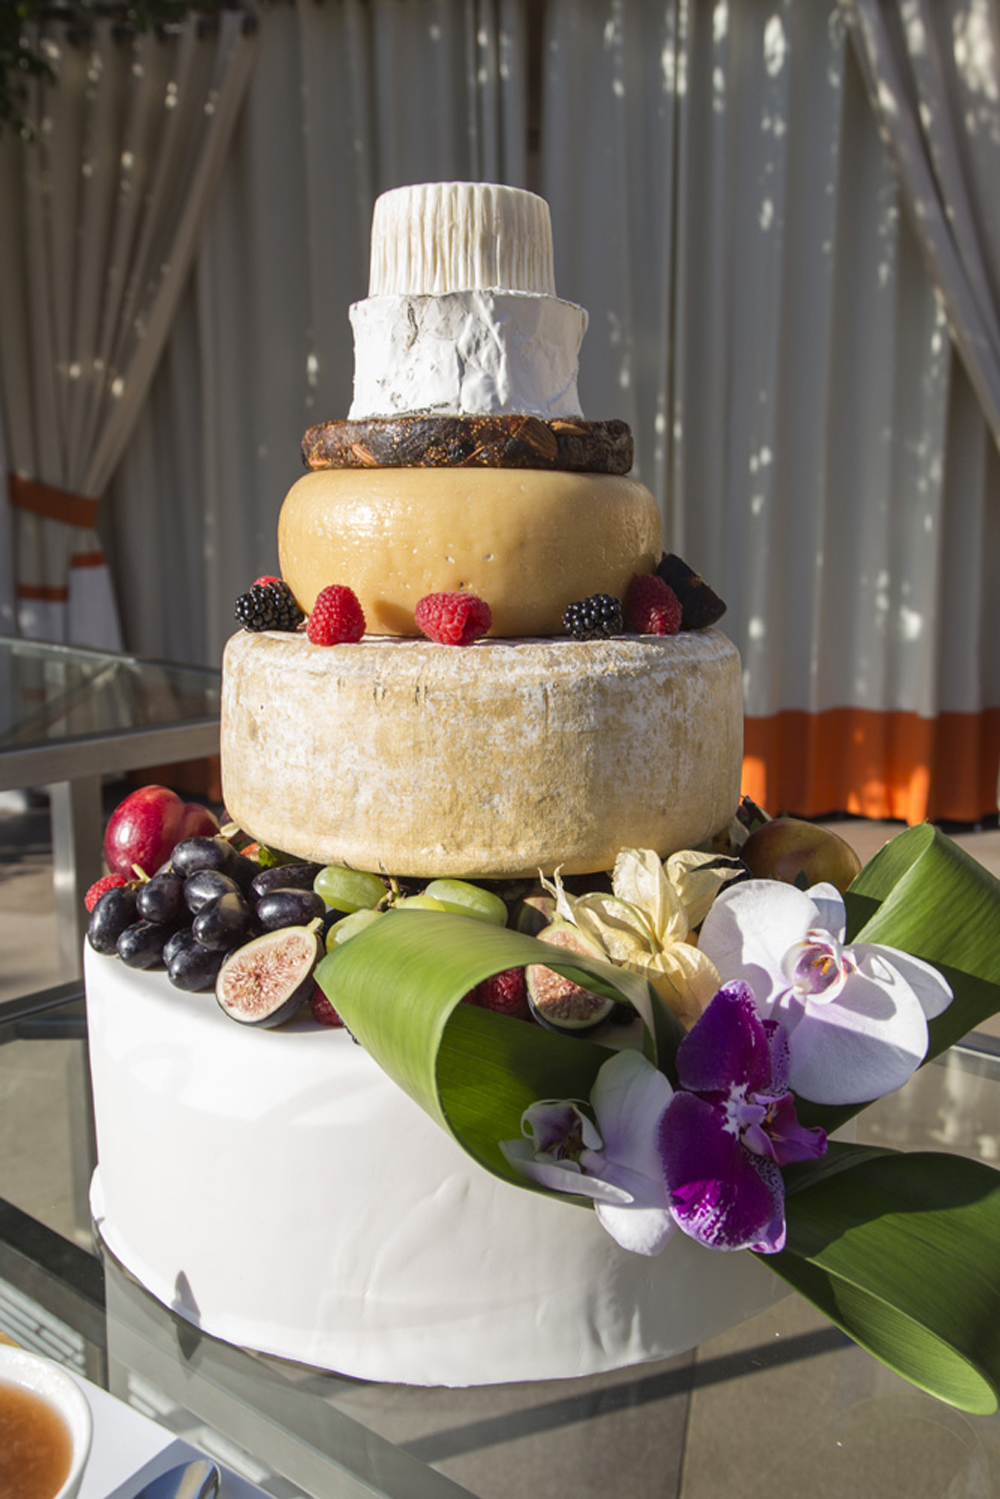 The Groom's Cheese Cake